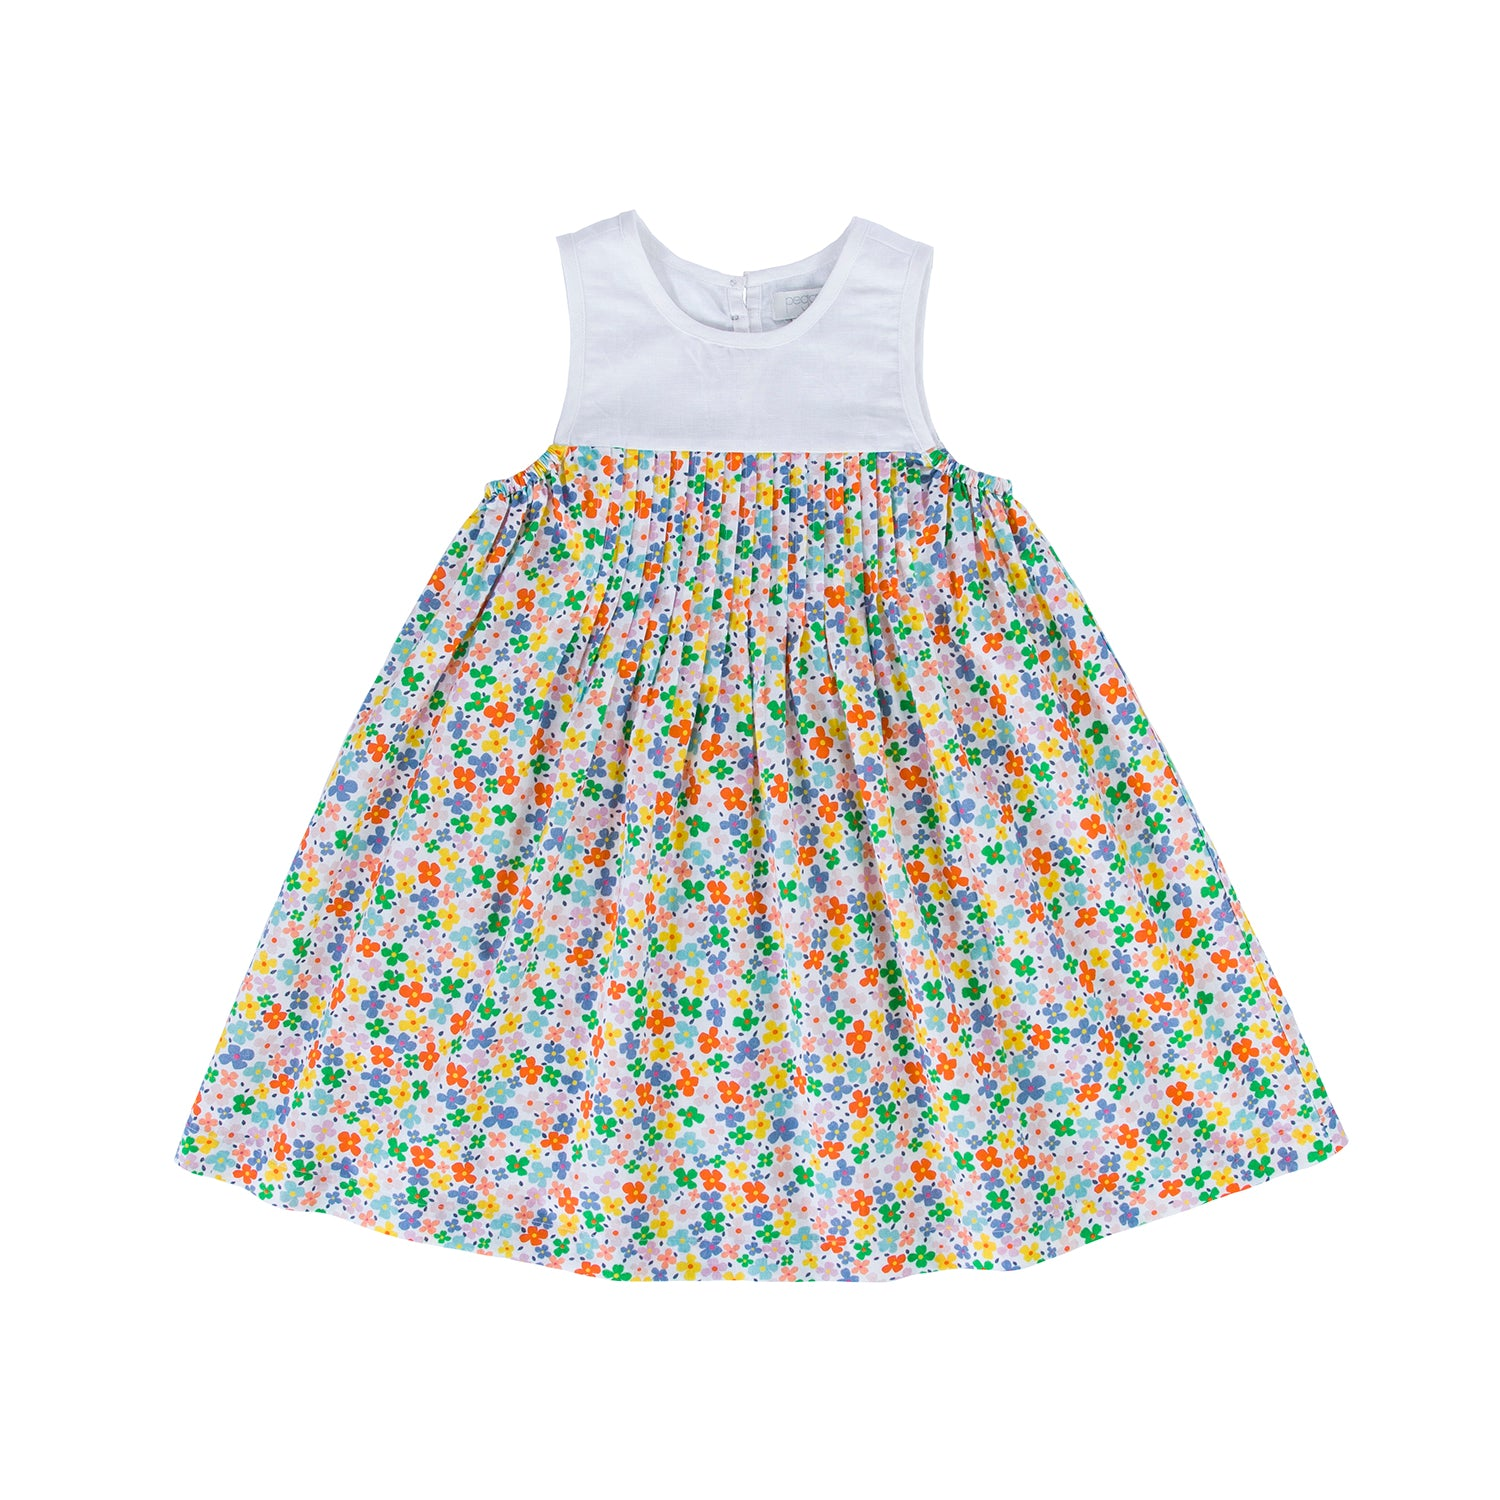 Peggy - Poppie Dress Multi bright coloured floral